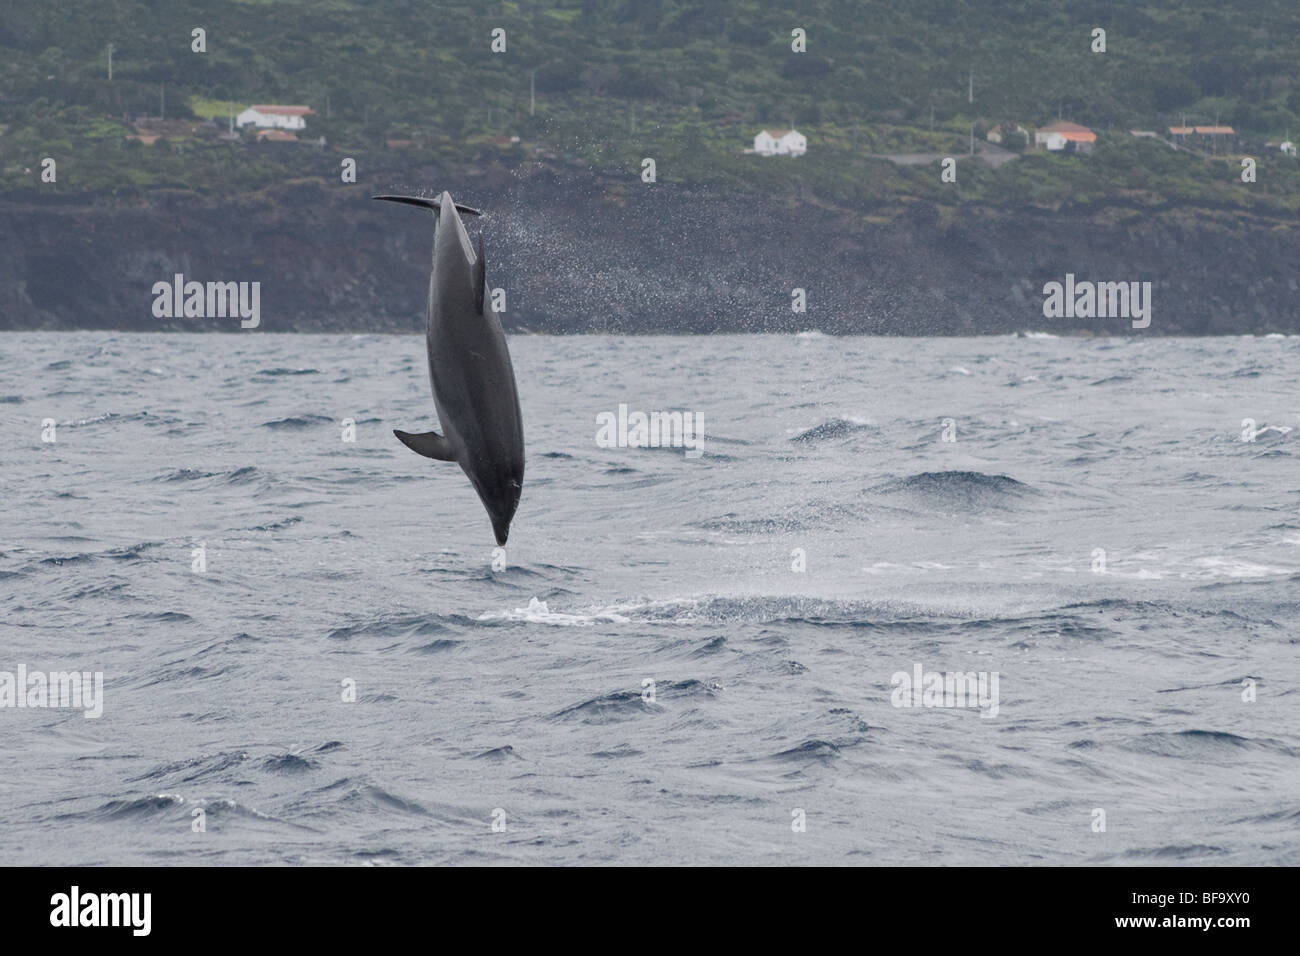 Common Bottlenose Dolphin, Tursiops truncatus, breaching clear of the water, Azores, Atlantic Ocean. - Stock Image